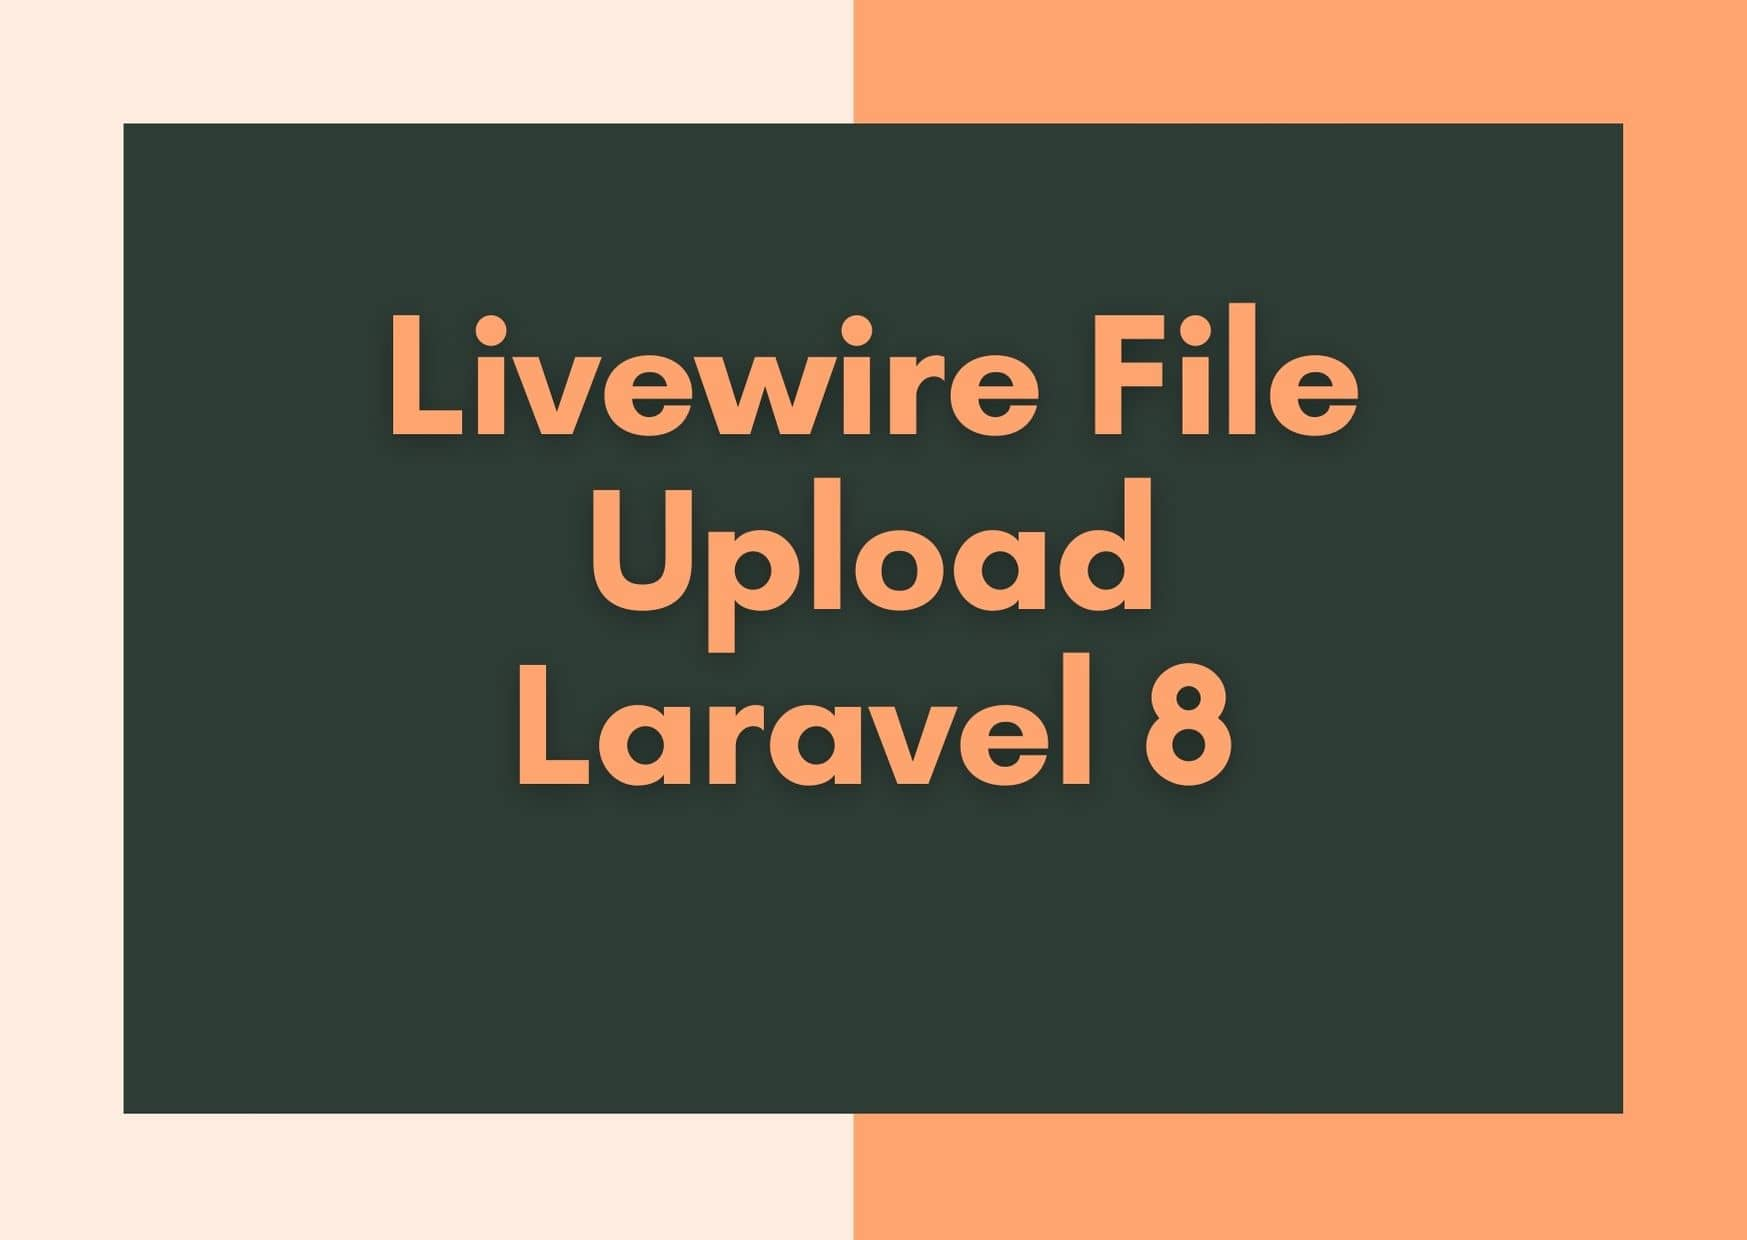 How to Upload Files/Images with Livewire Laravel 8